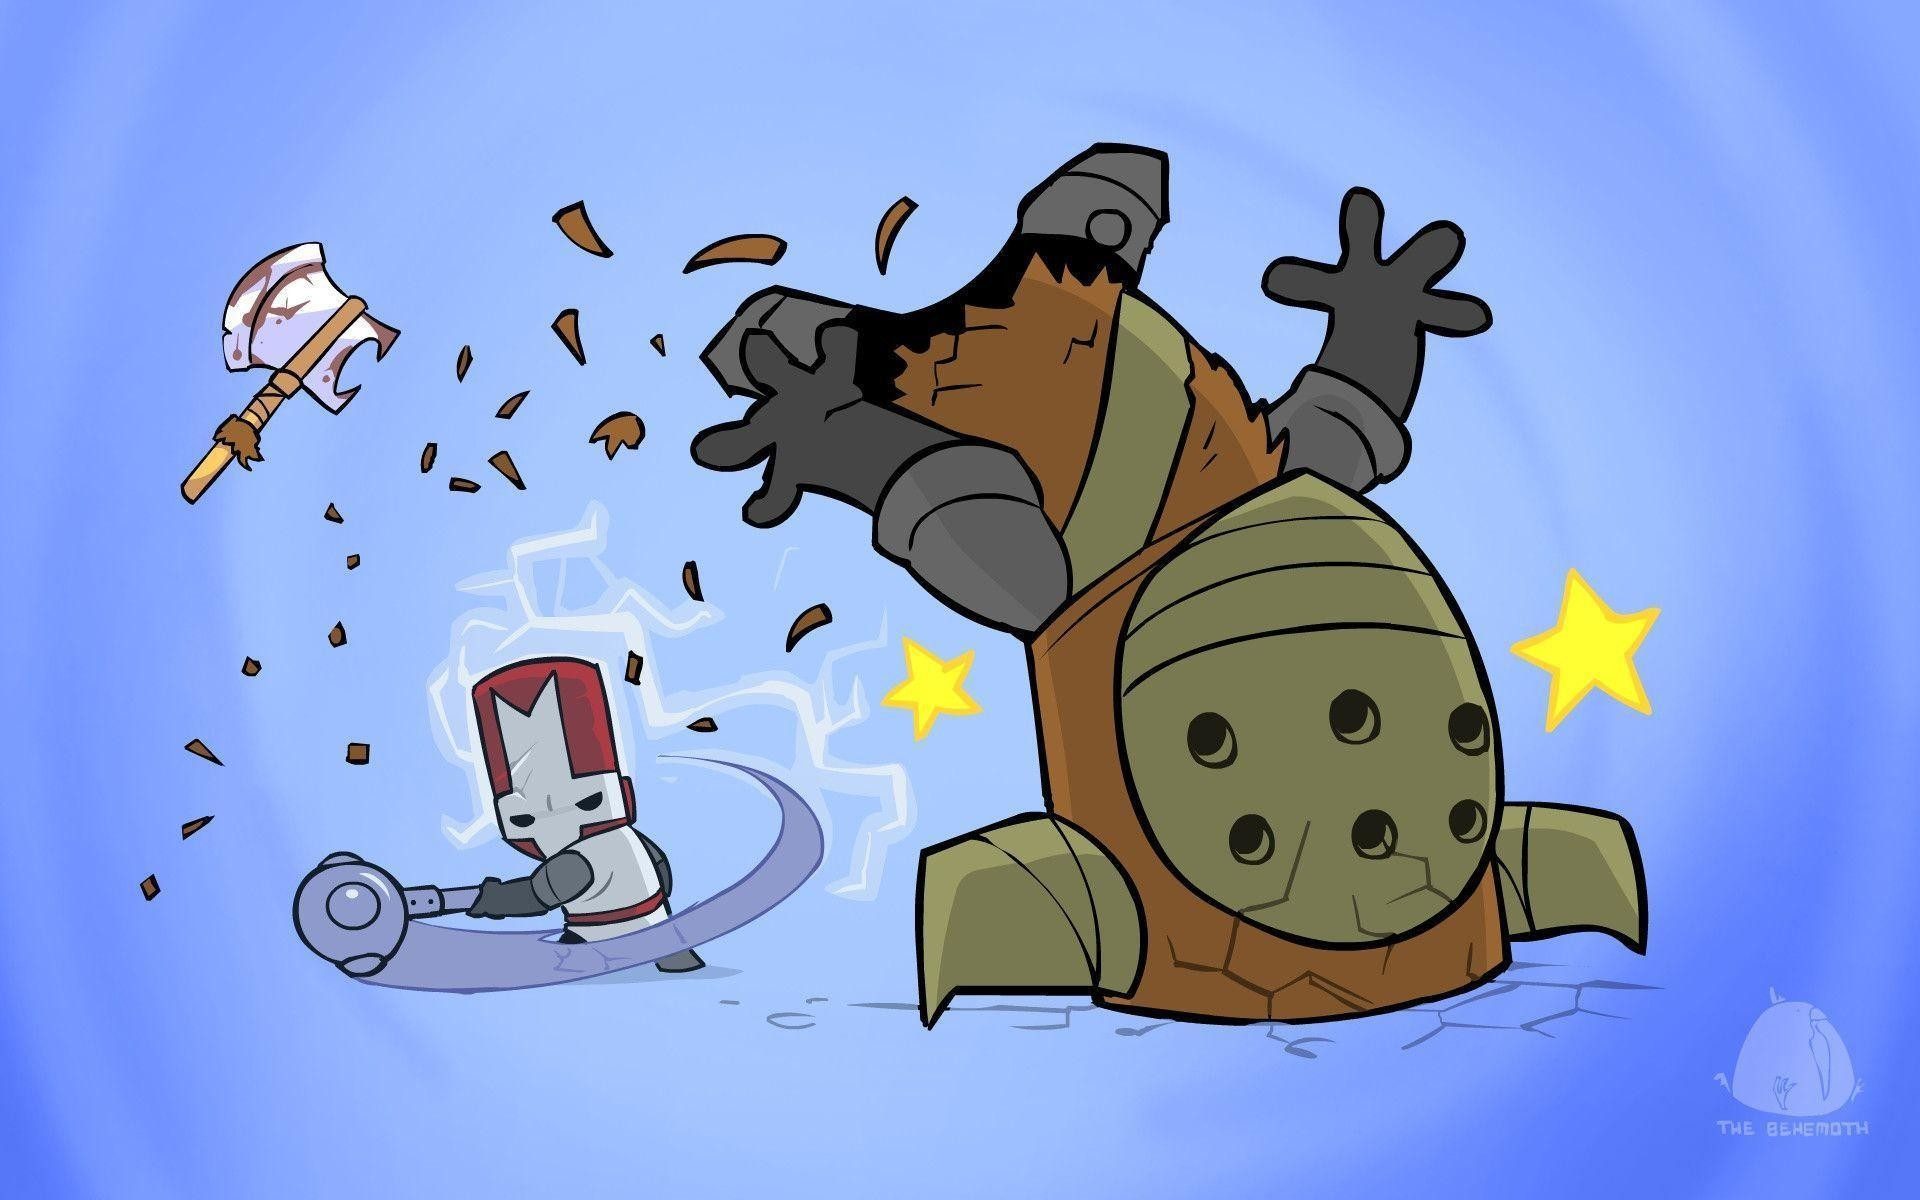 Castle Crashers Wallpapers – Full HD wallpaper search